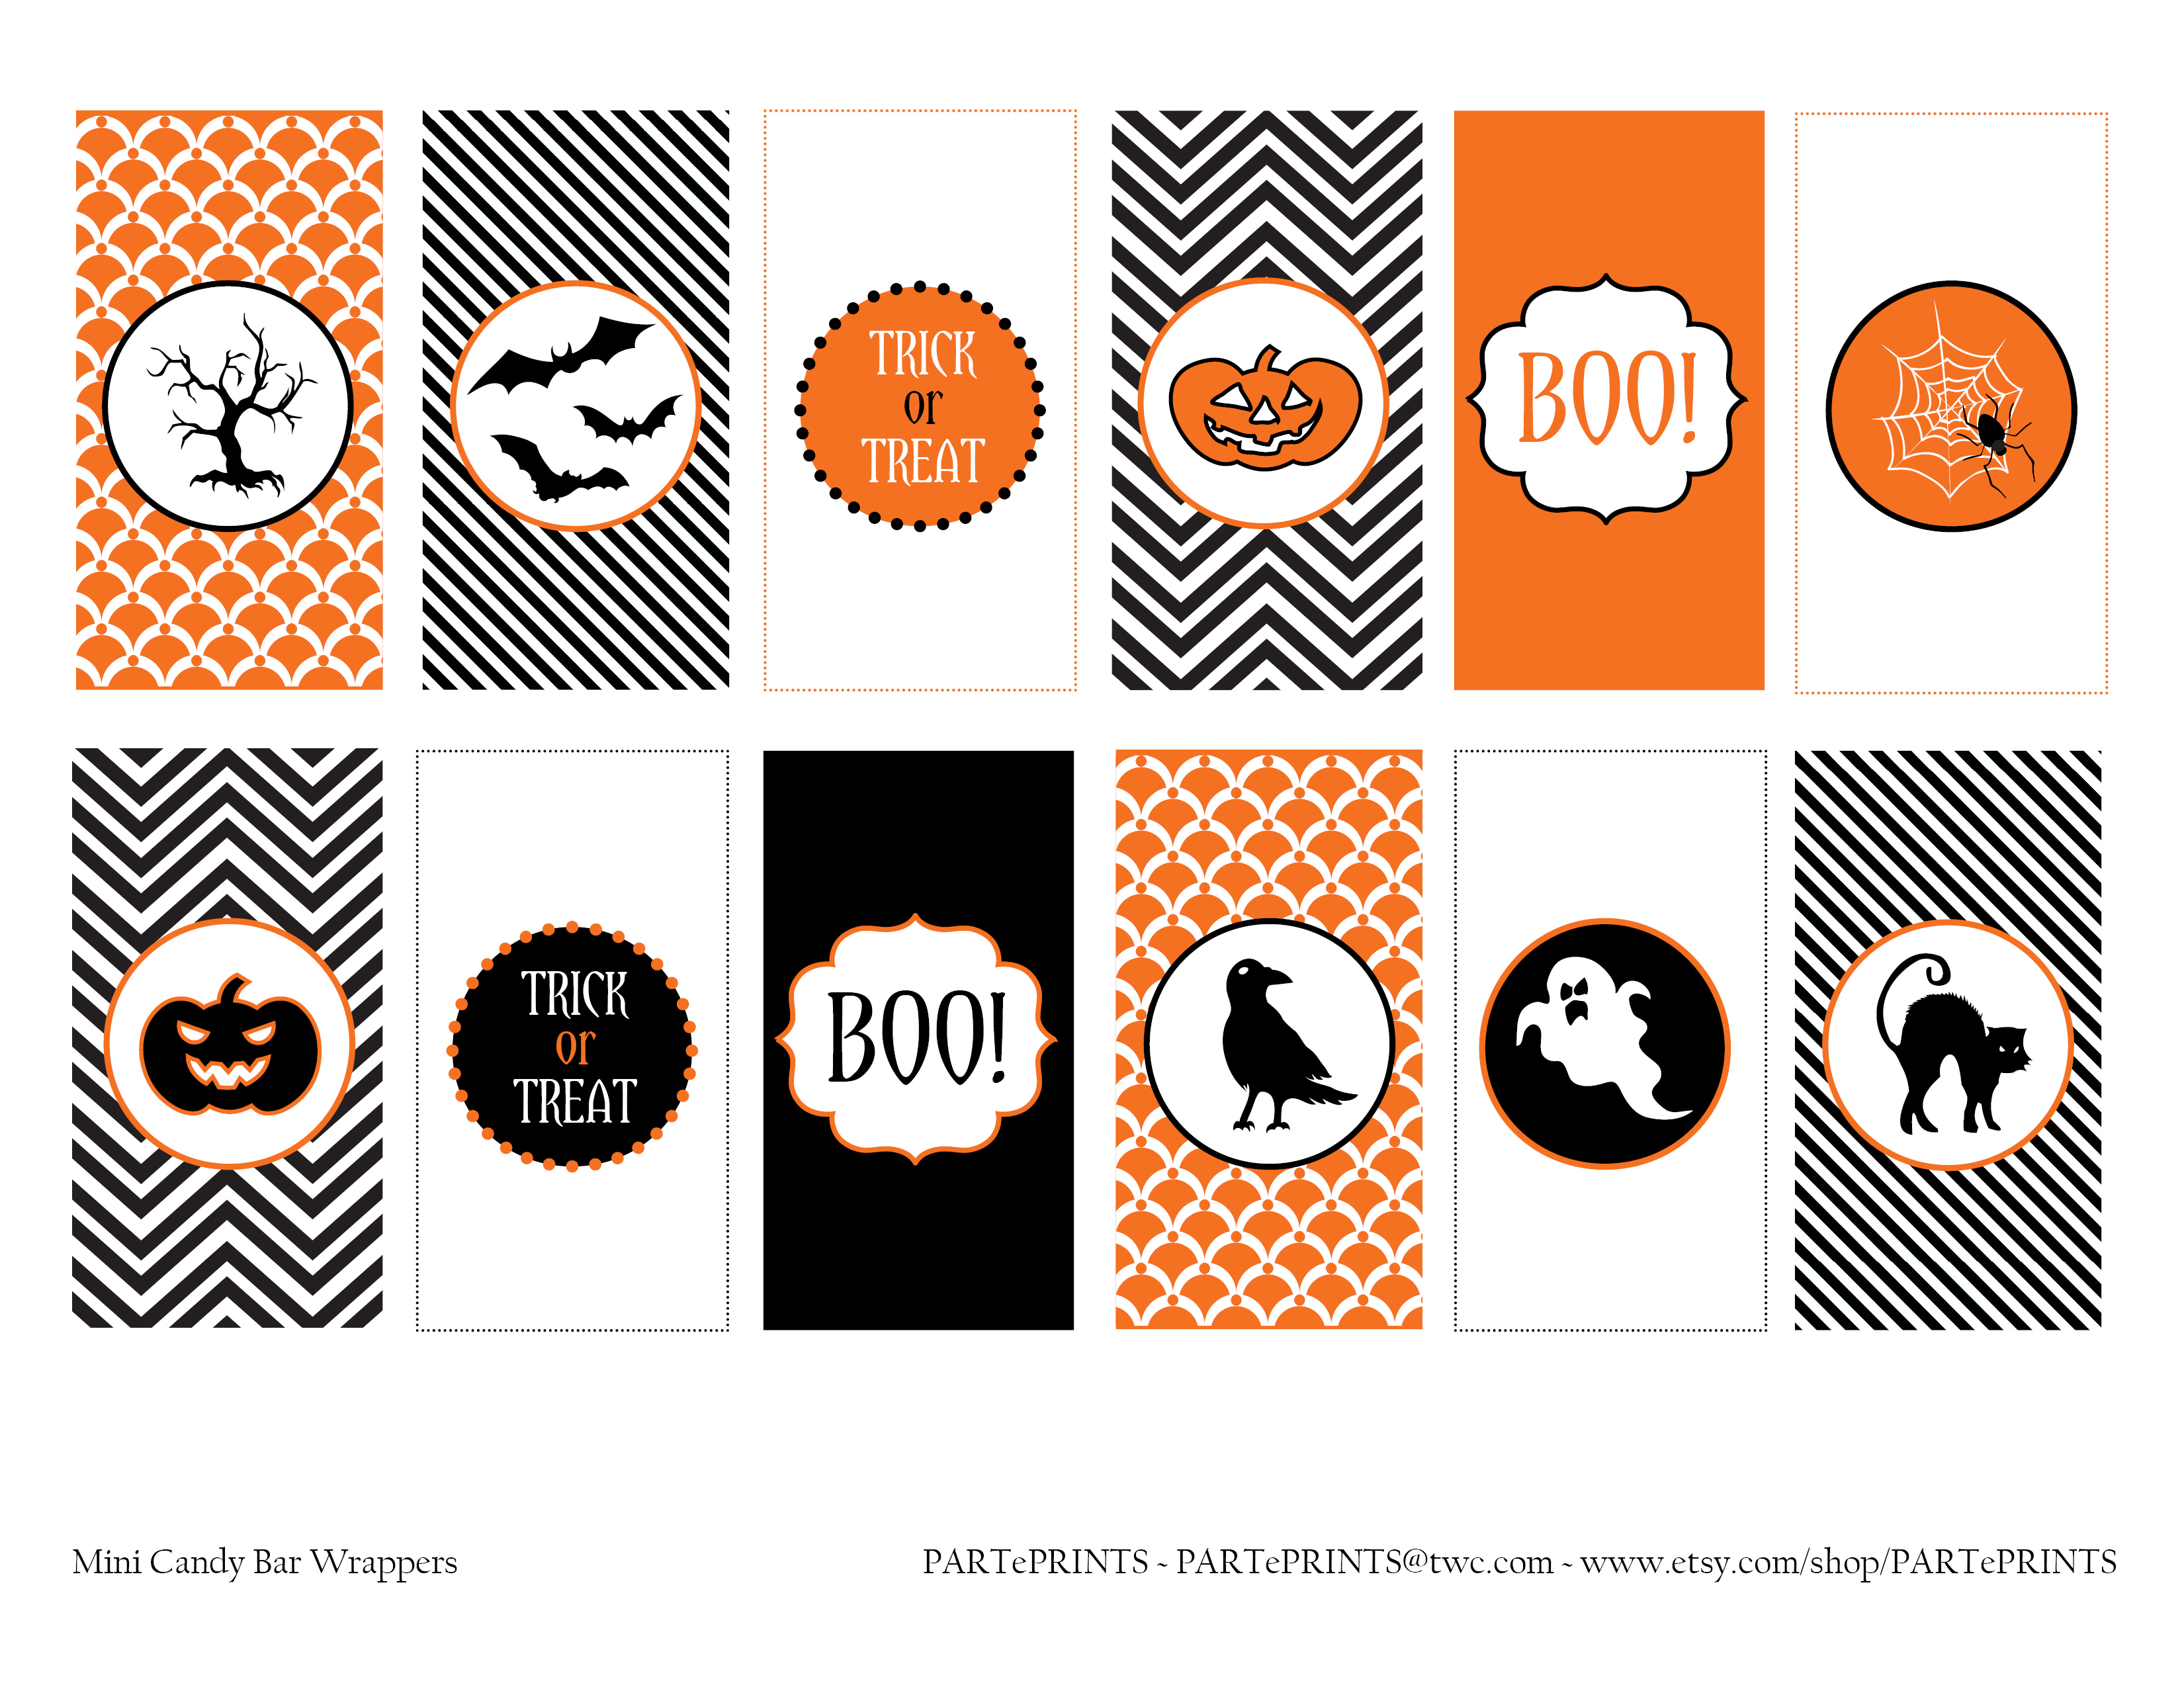 Free Halloween Printables From Parteprints   Catch My Party - Free Printable Halloween Banner Templates